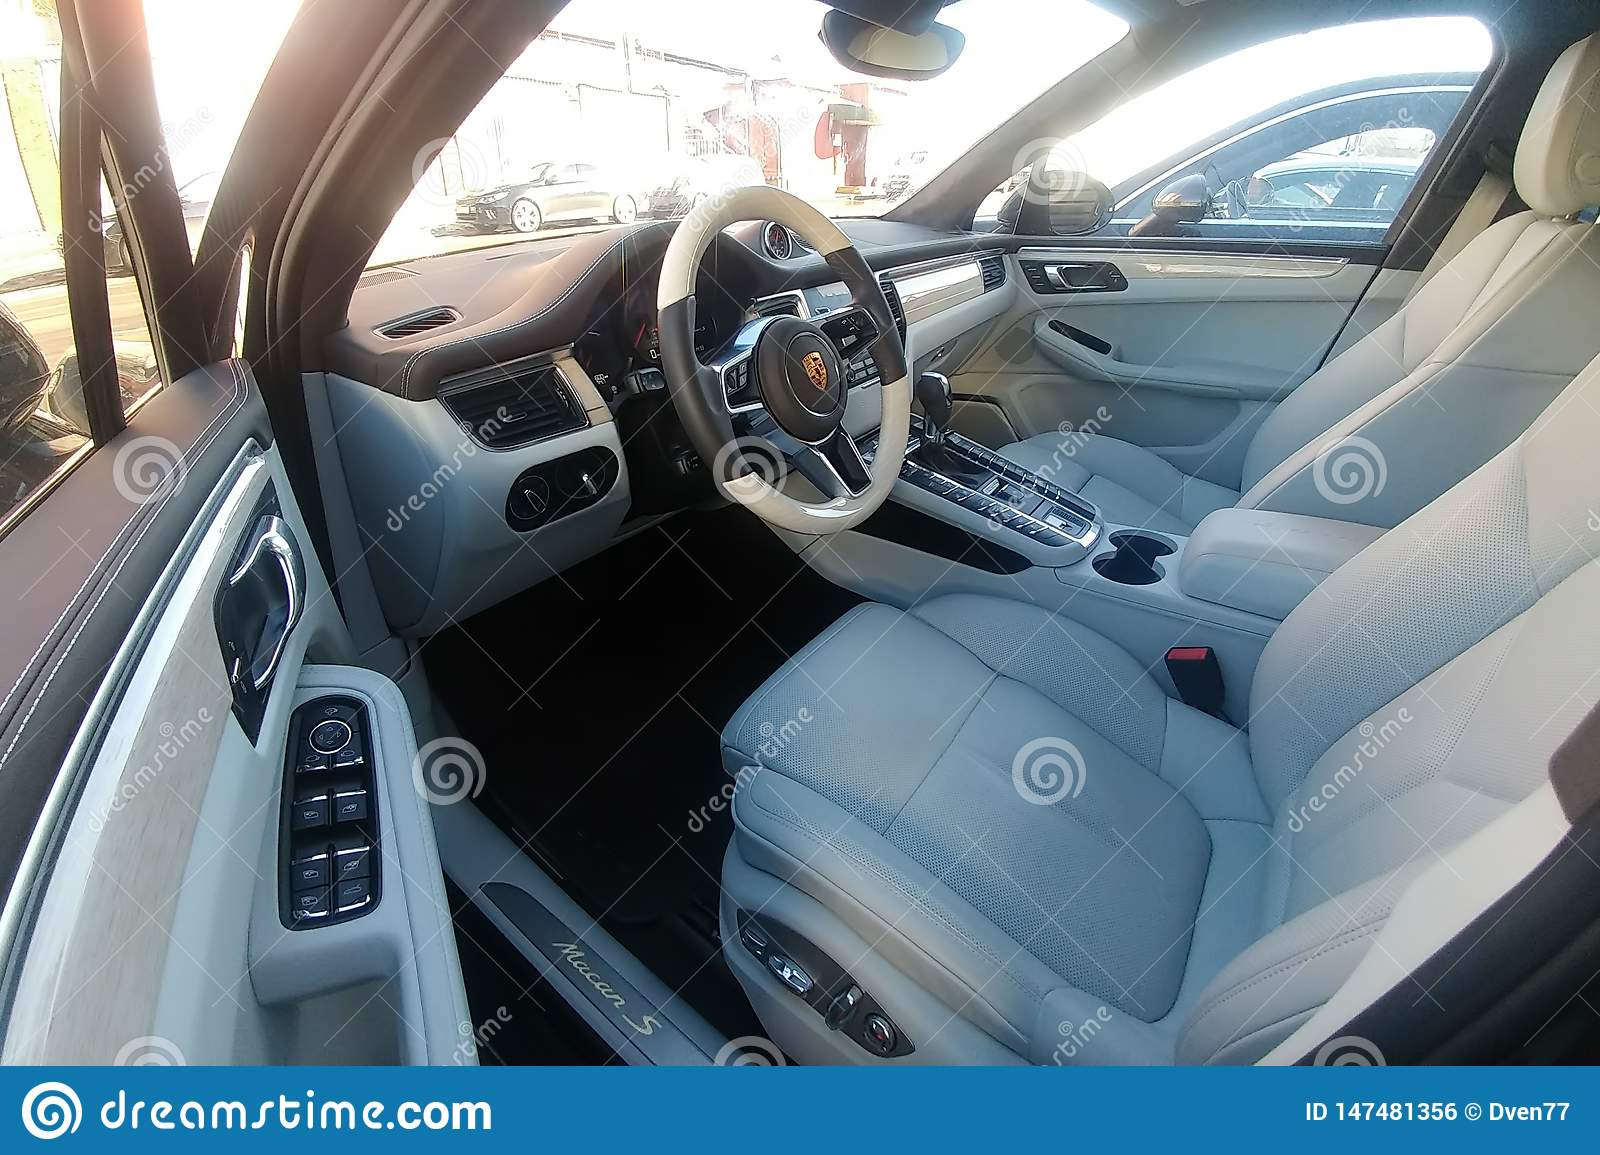 Moscow Russia May 09 2019 White Leather Interior Of An Premium Suv Porsche Macan Parked On The Street Package Trim Car Of Foto Editorial Imagem De Macan Interior 147481356